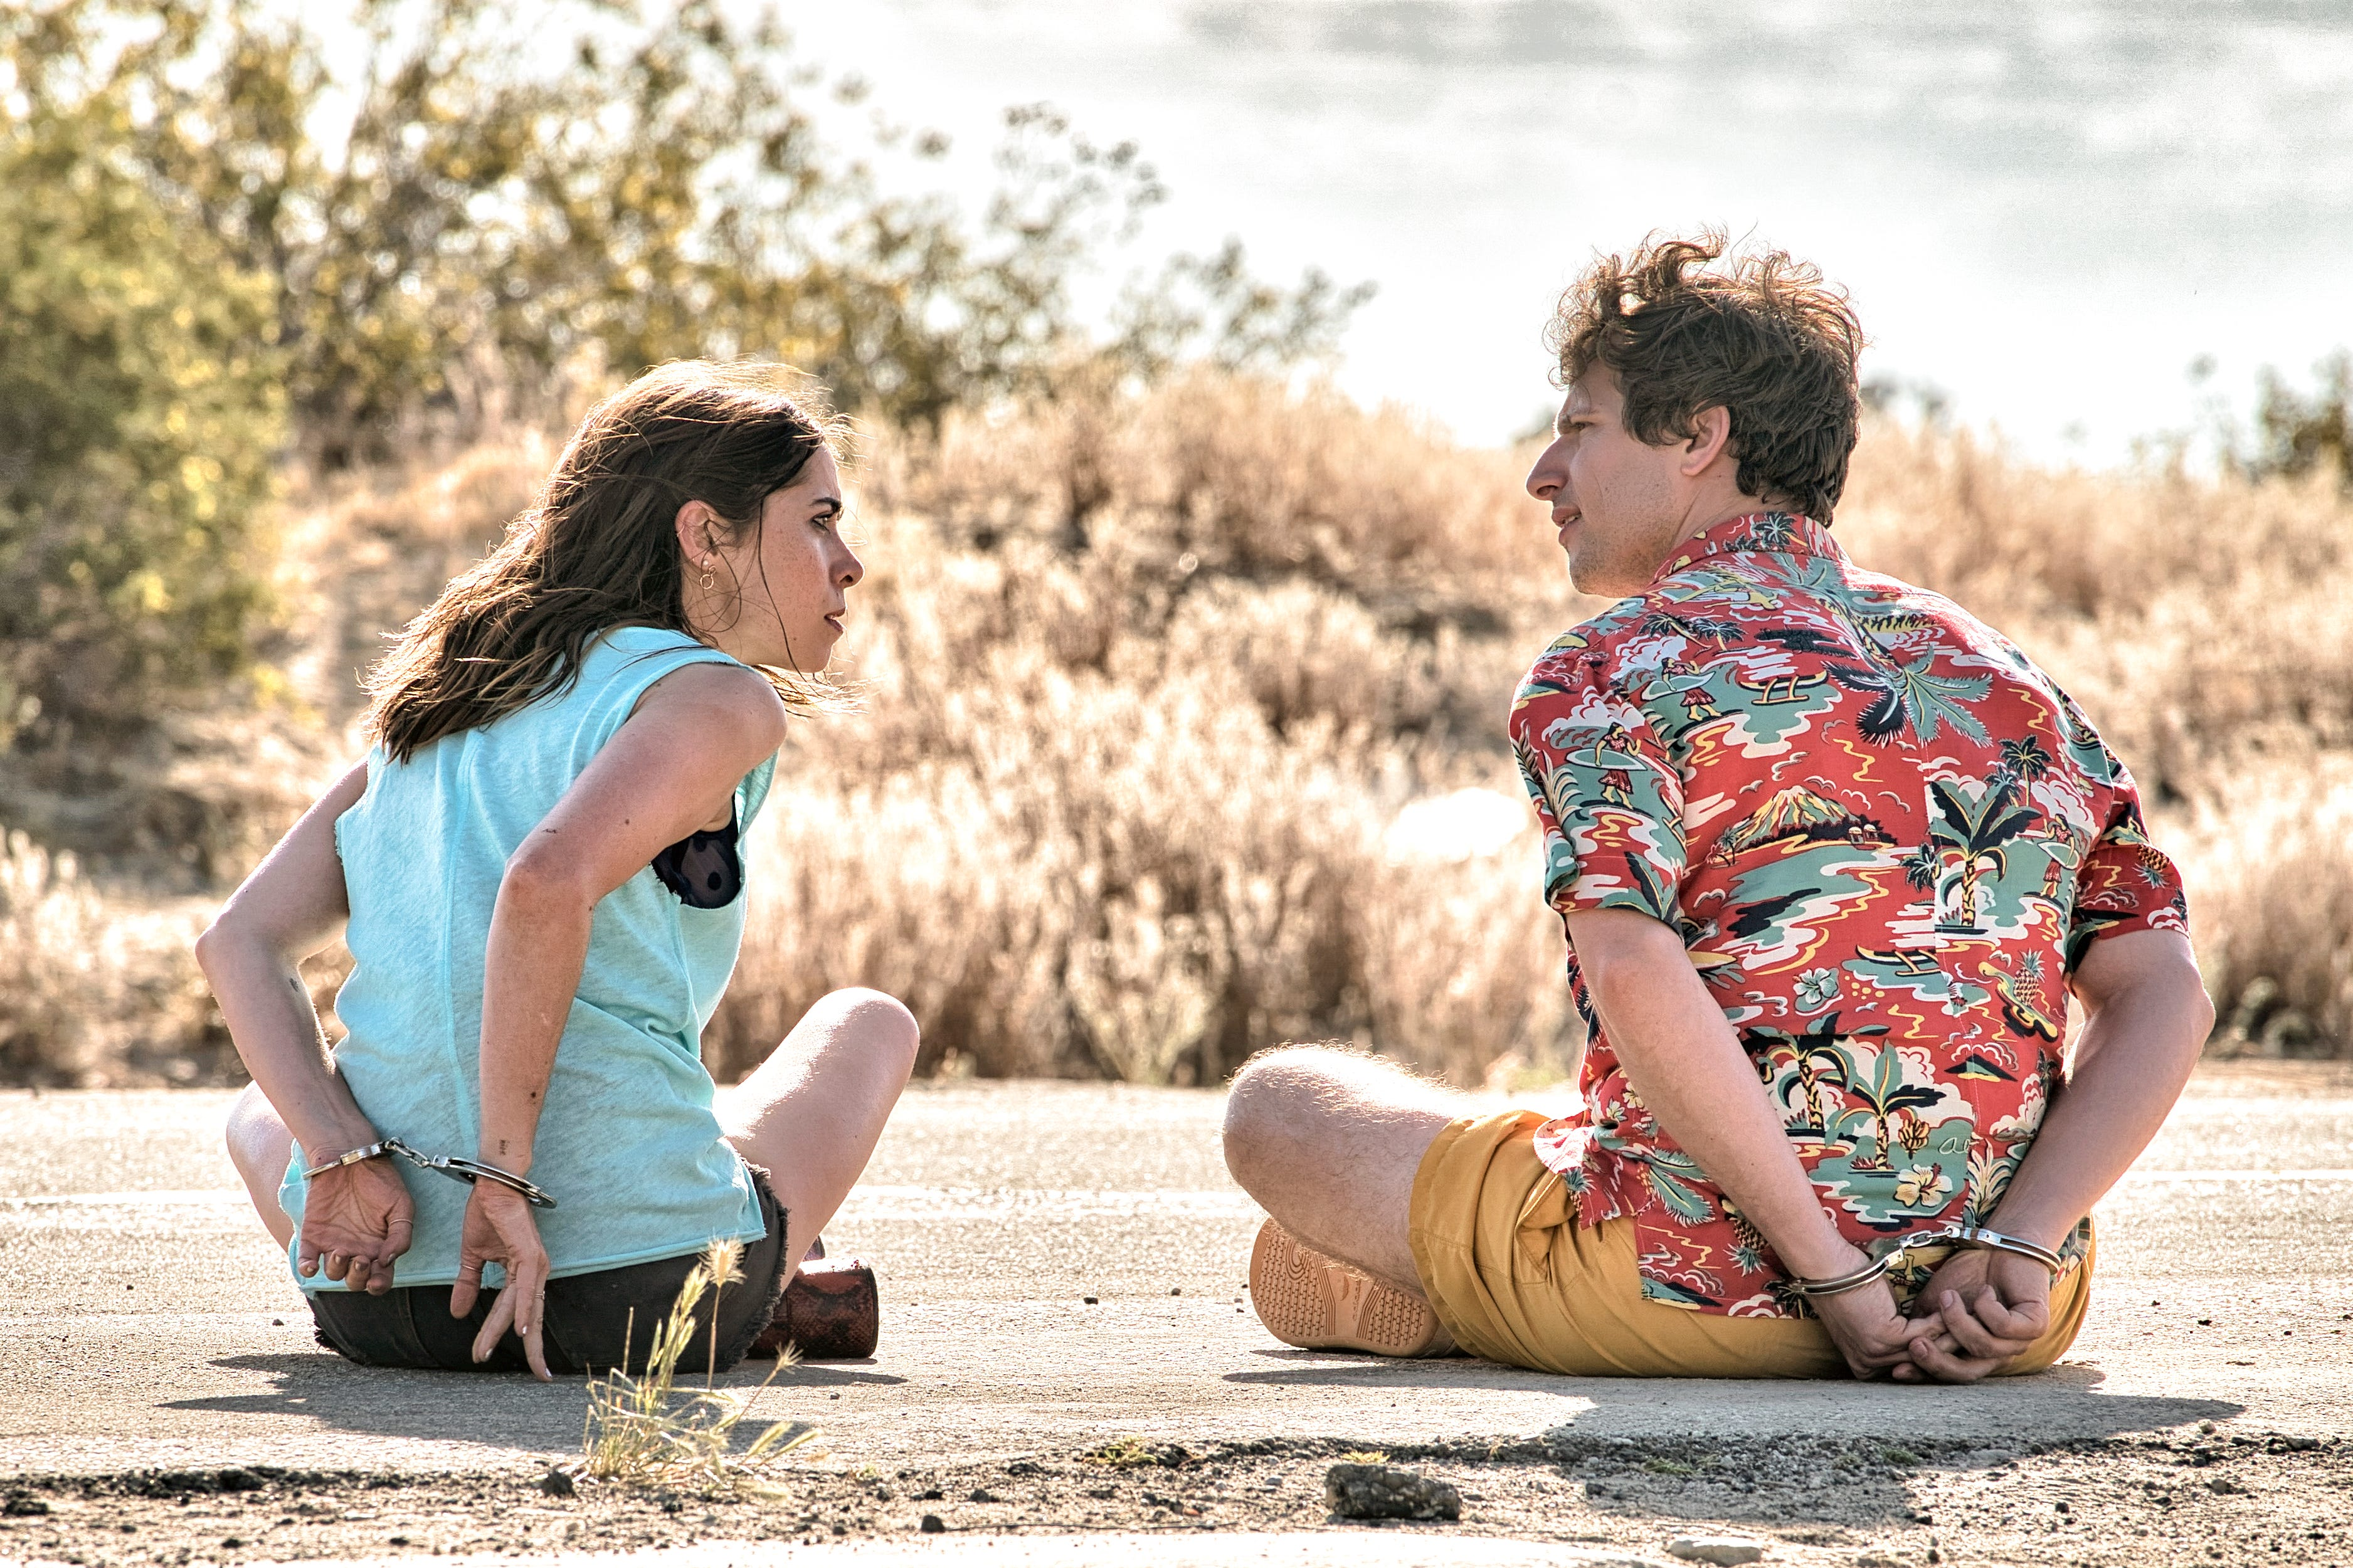 Andy Samberg film 'Palm Springs' to premiere July 10 on Hulu, at drive-ins